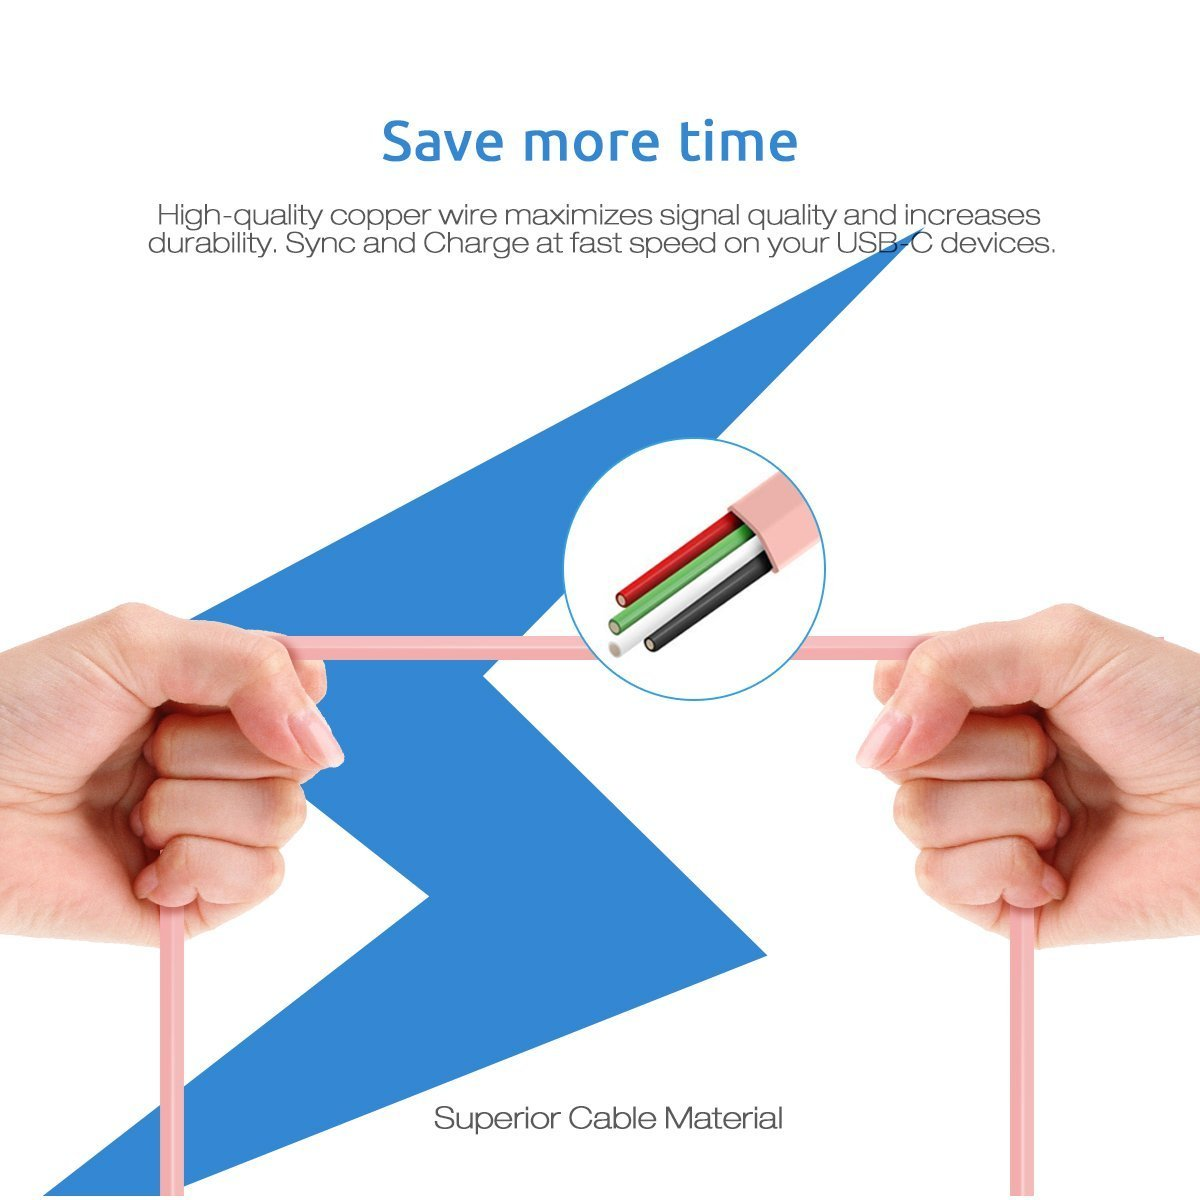 Usb Type C Cable Pink Pisen To 3ft Usbc Wiring Diagram Durable Flat Fast Charger Cord For Samsung Galaxy Note 8 S8 Plus Pixel Xl Moto Z Z2